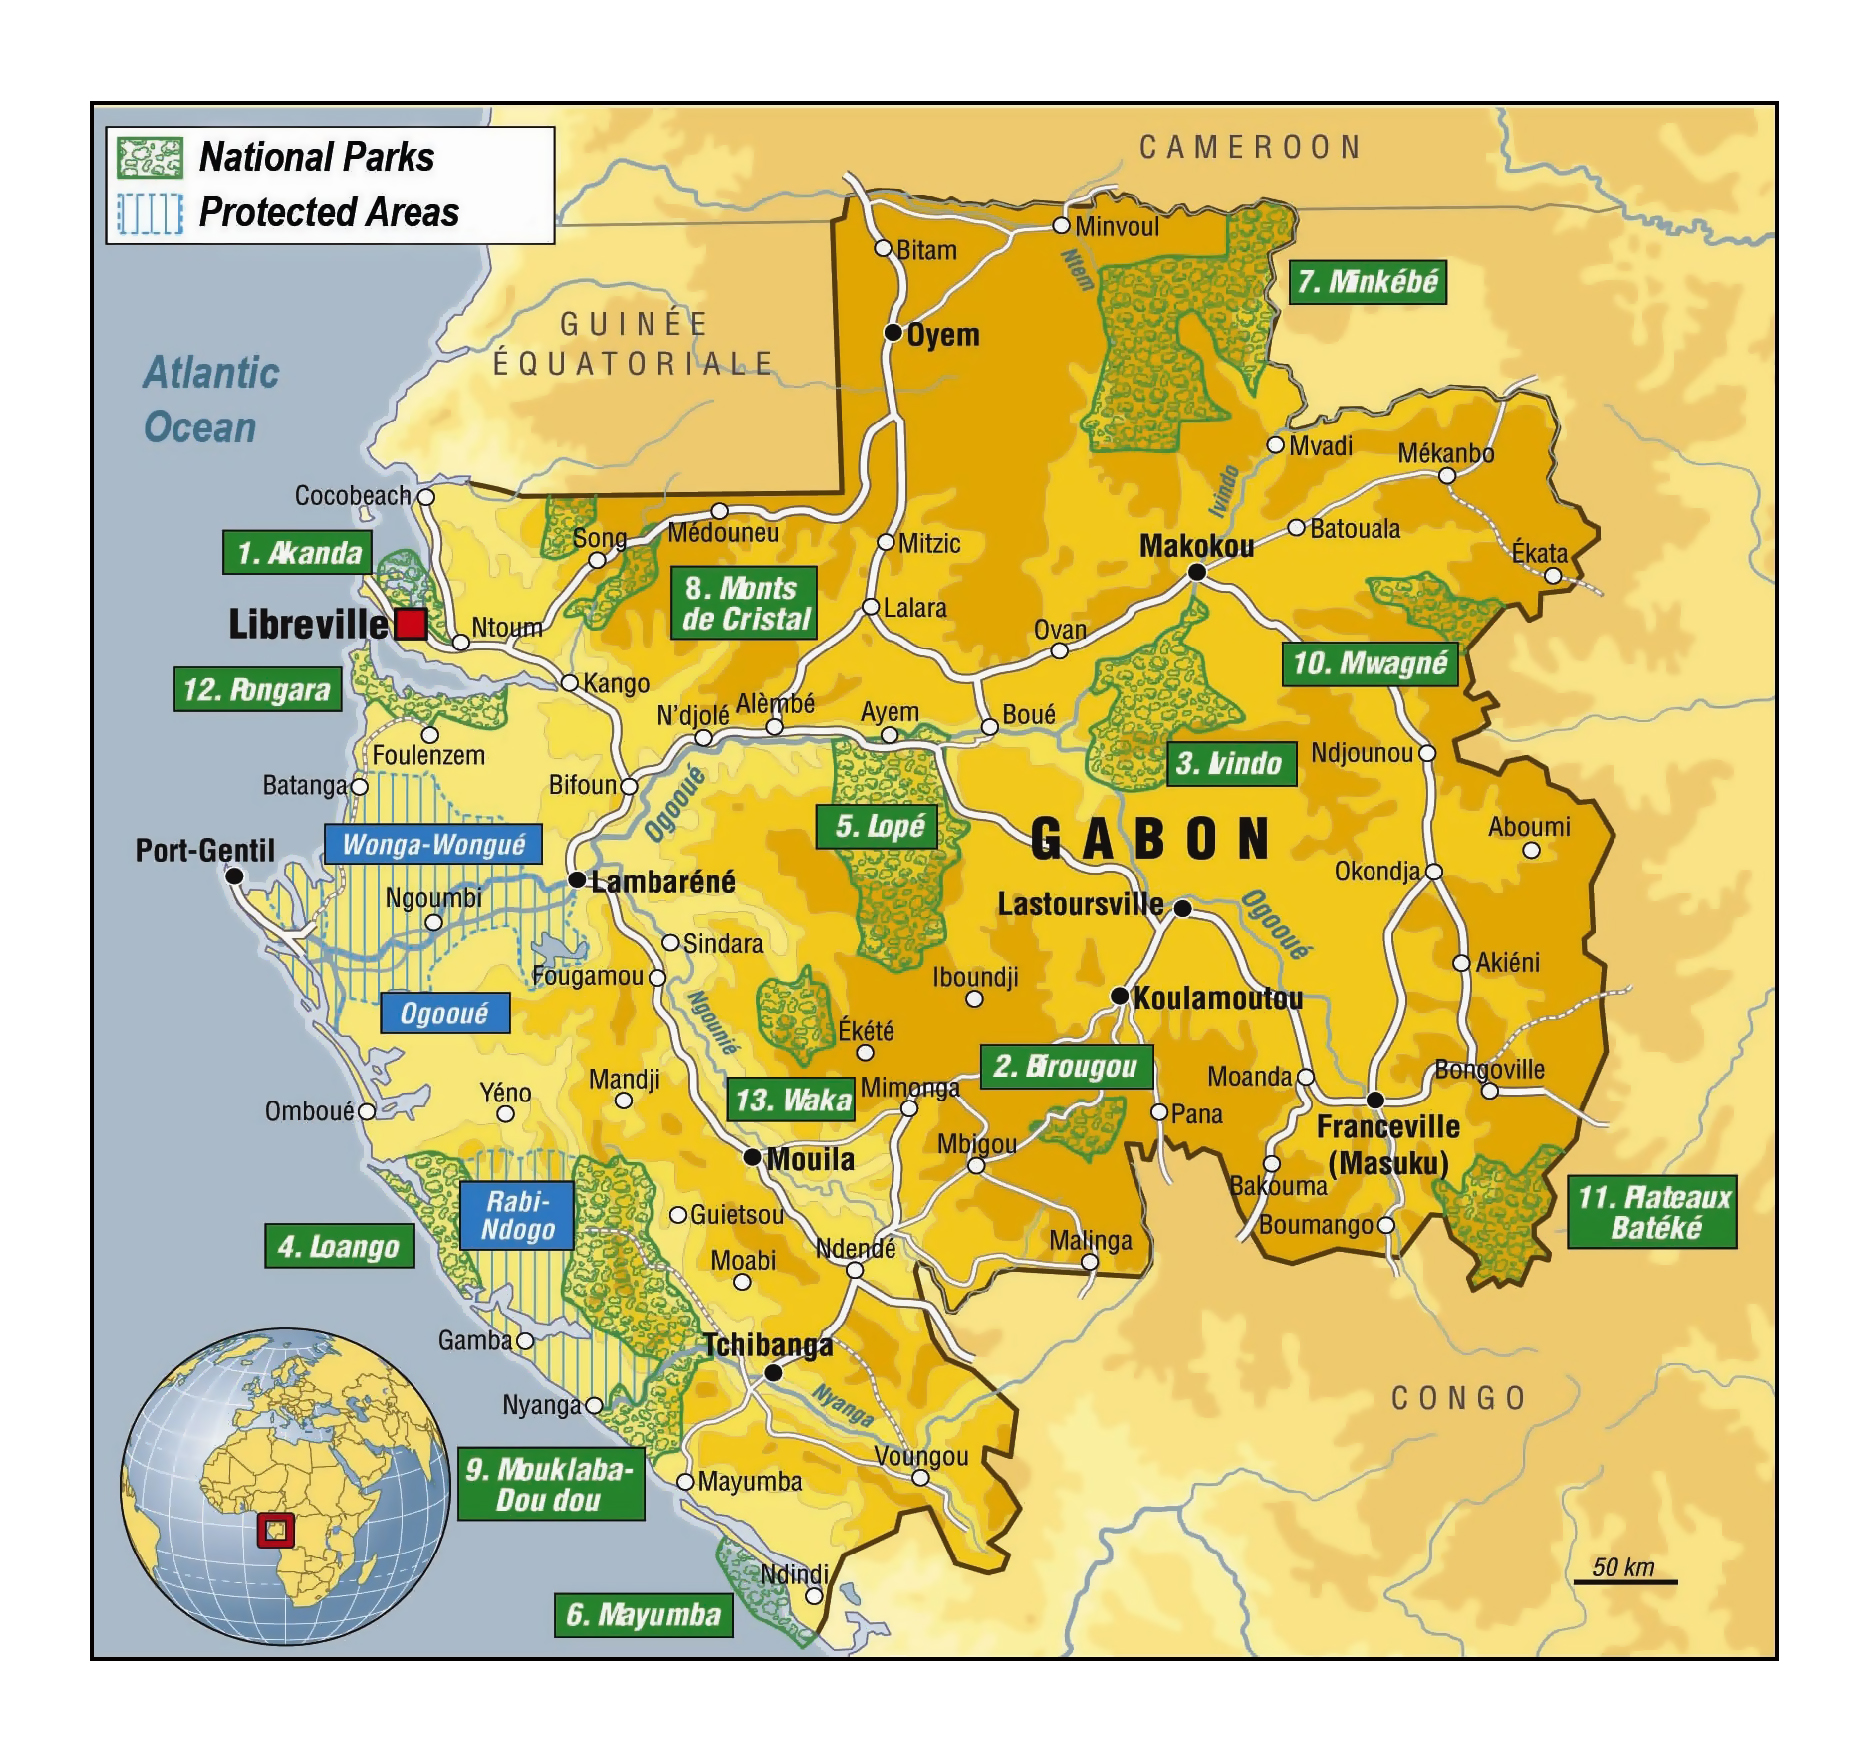 Mayumba National Park West Africa, Large detailed national parks map of Gabon | Gabon | Africa ...